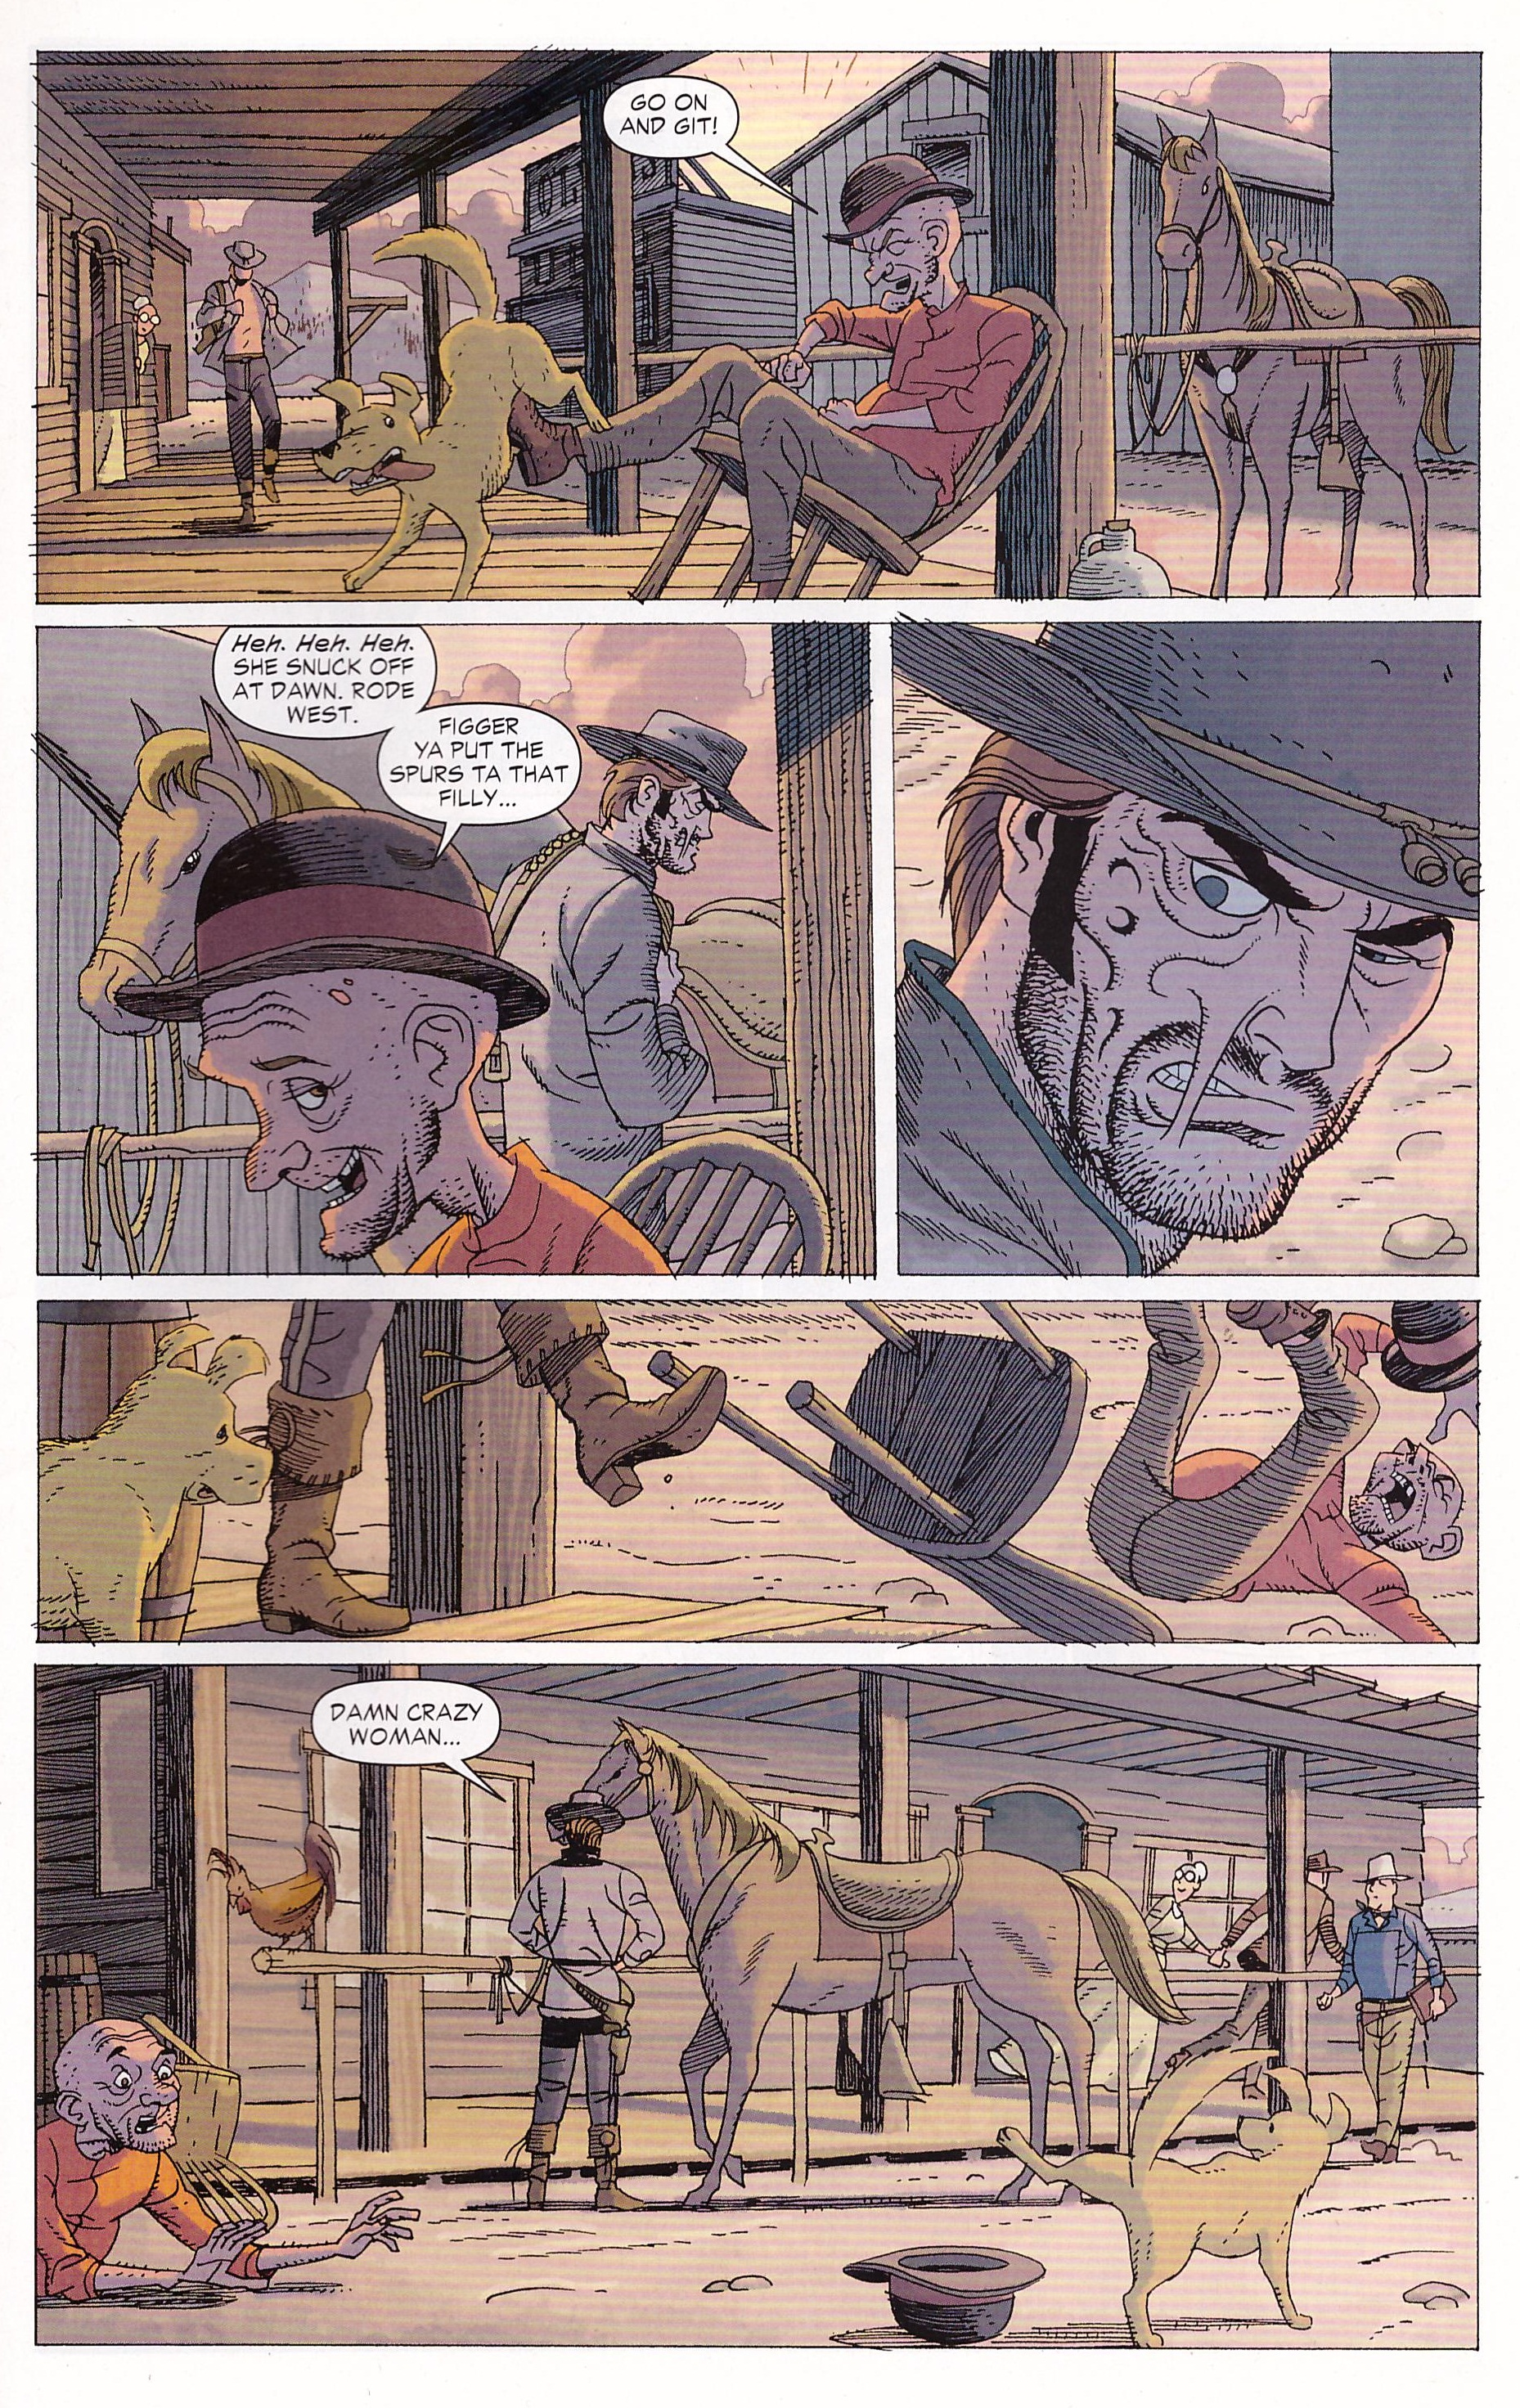 Jonah Hex Counting Corpses review